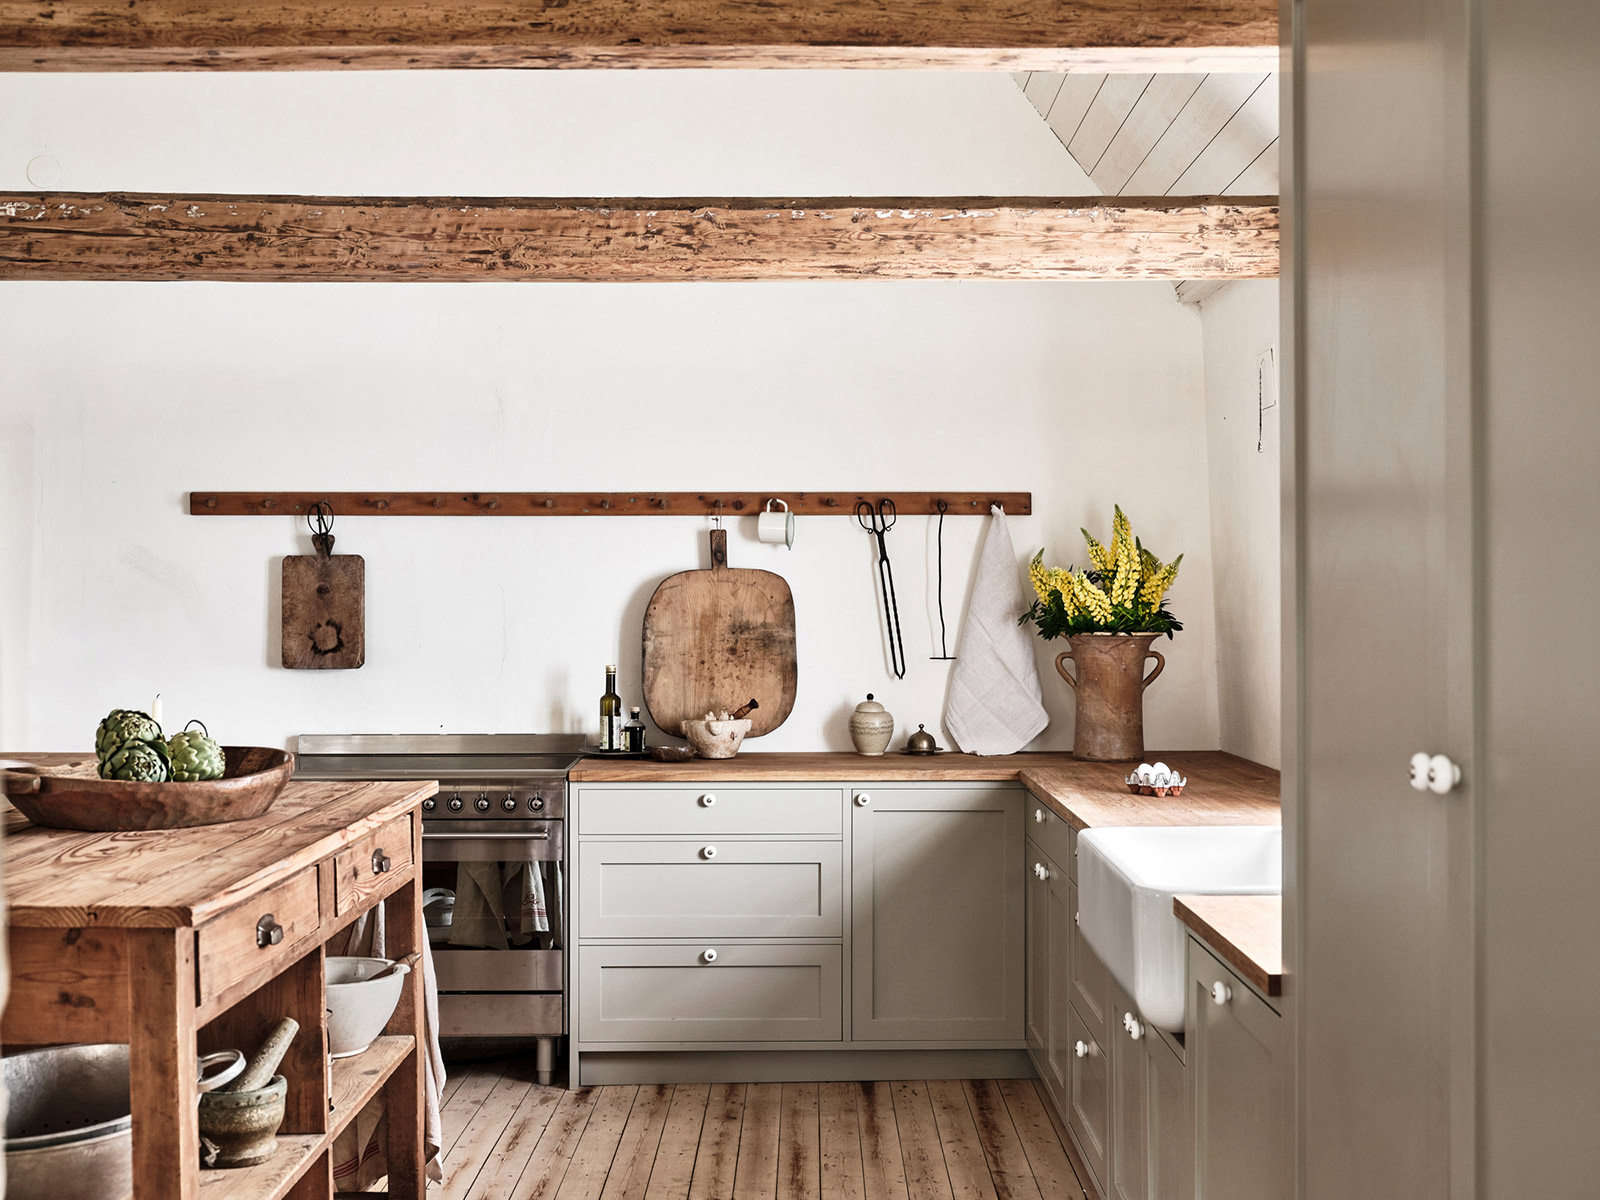 The Modern Farmhouse Kitchen: A Dream Remodel in the Swedish Countryside